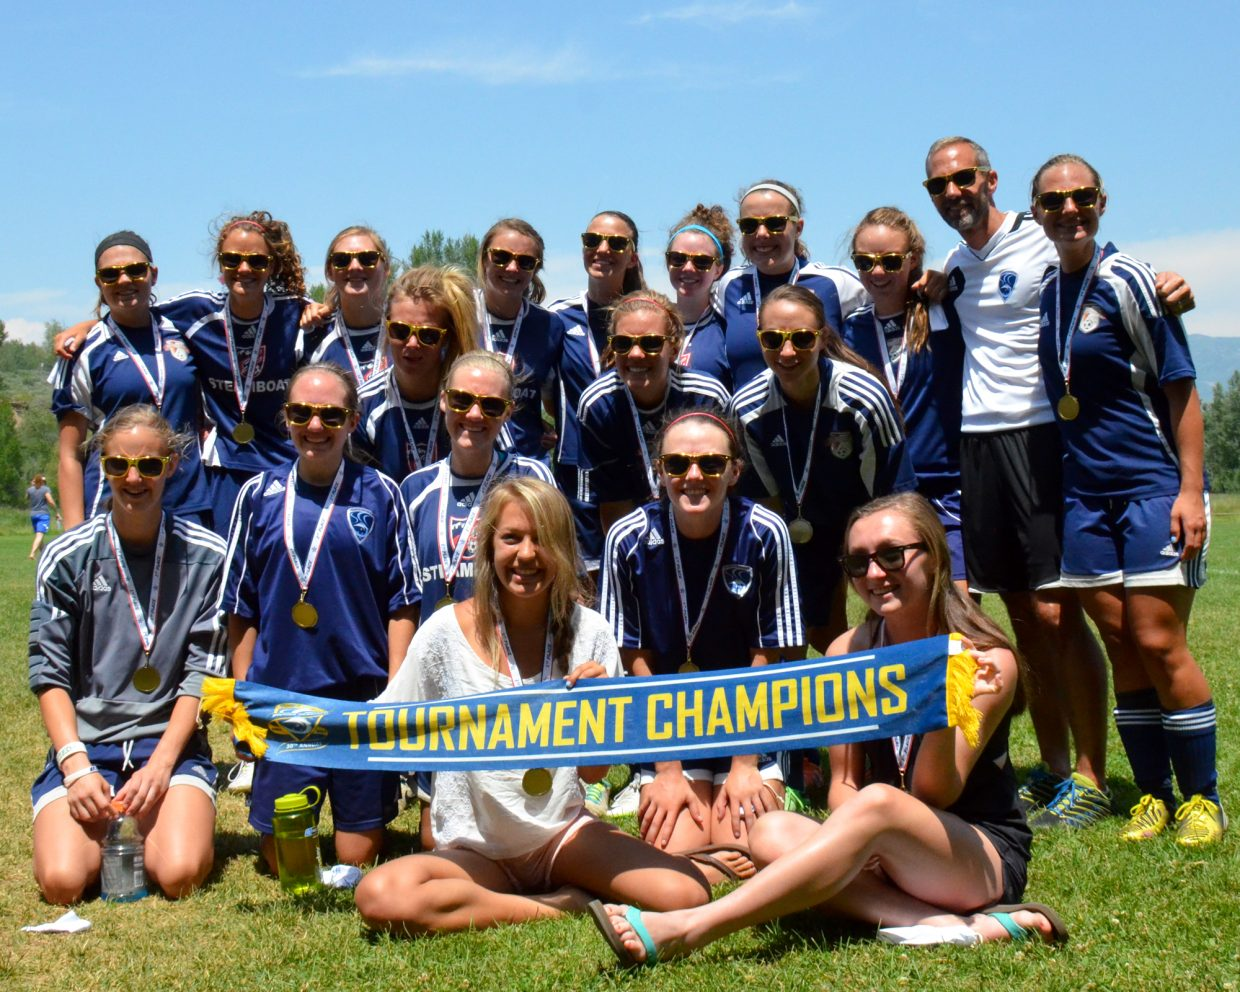 Steamboat Soccer Club U19G win their division in the Steamboat Mountain Soccer Tournament beating Real 2-0. Submitted by: Jan DePuy